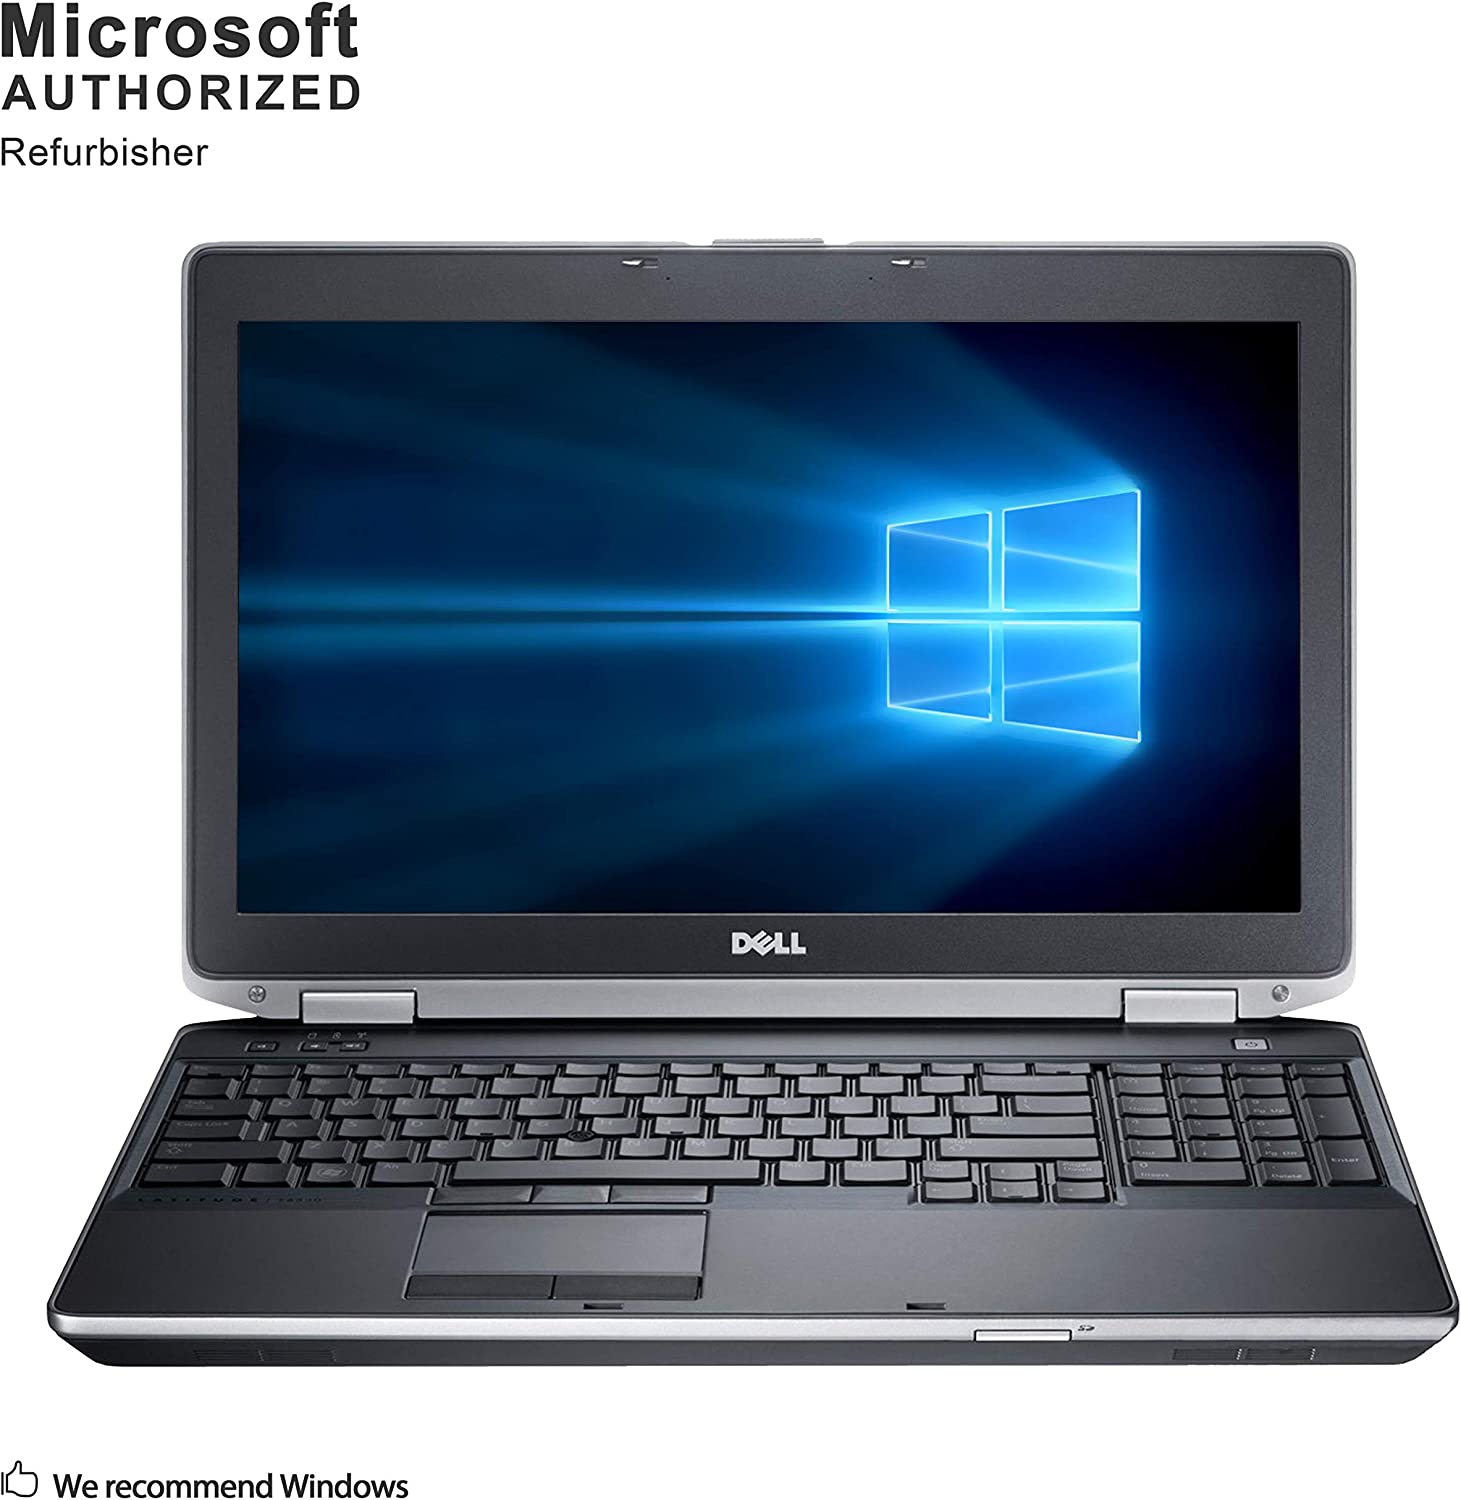 Dell Latitude E6530 15.6 Inch Business Laptop, Intel Core i5-3320M up to 3.3GHz, 8G DDR3, 240G SSD, DVD, WiFi, VGA, HDMI, Win 10 Pro 64 Bit Multi-Language Support English/French/Spanish(Renewed)